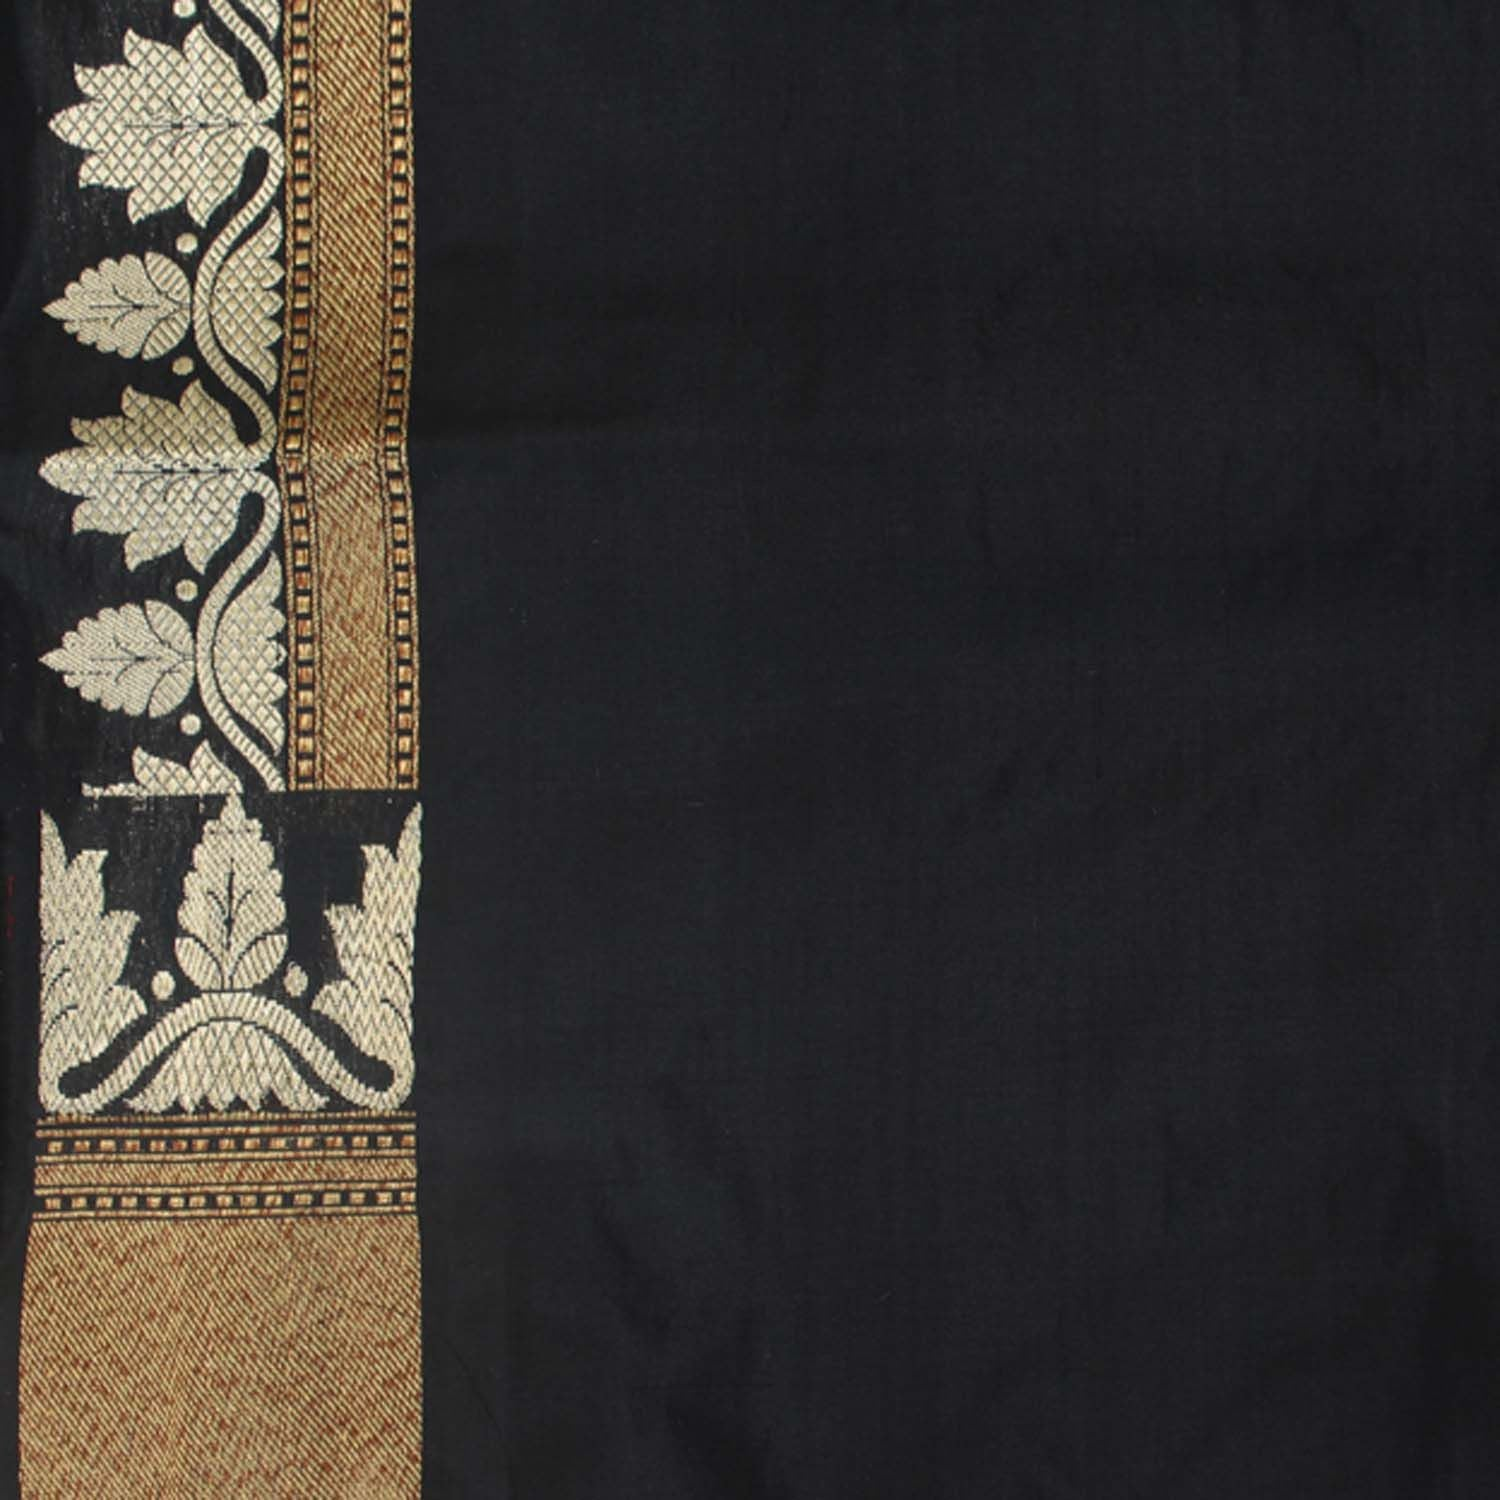 Black Pure Silk Georgette Handloom Banarasi Saree - Tilfi - 6